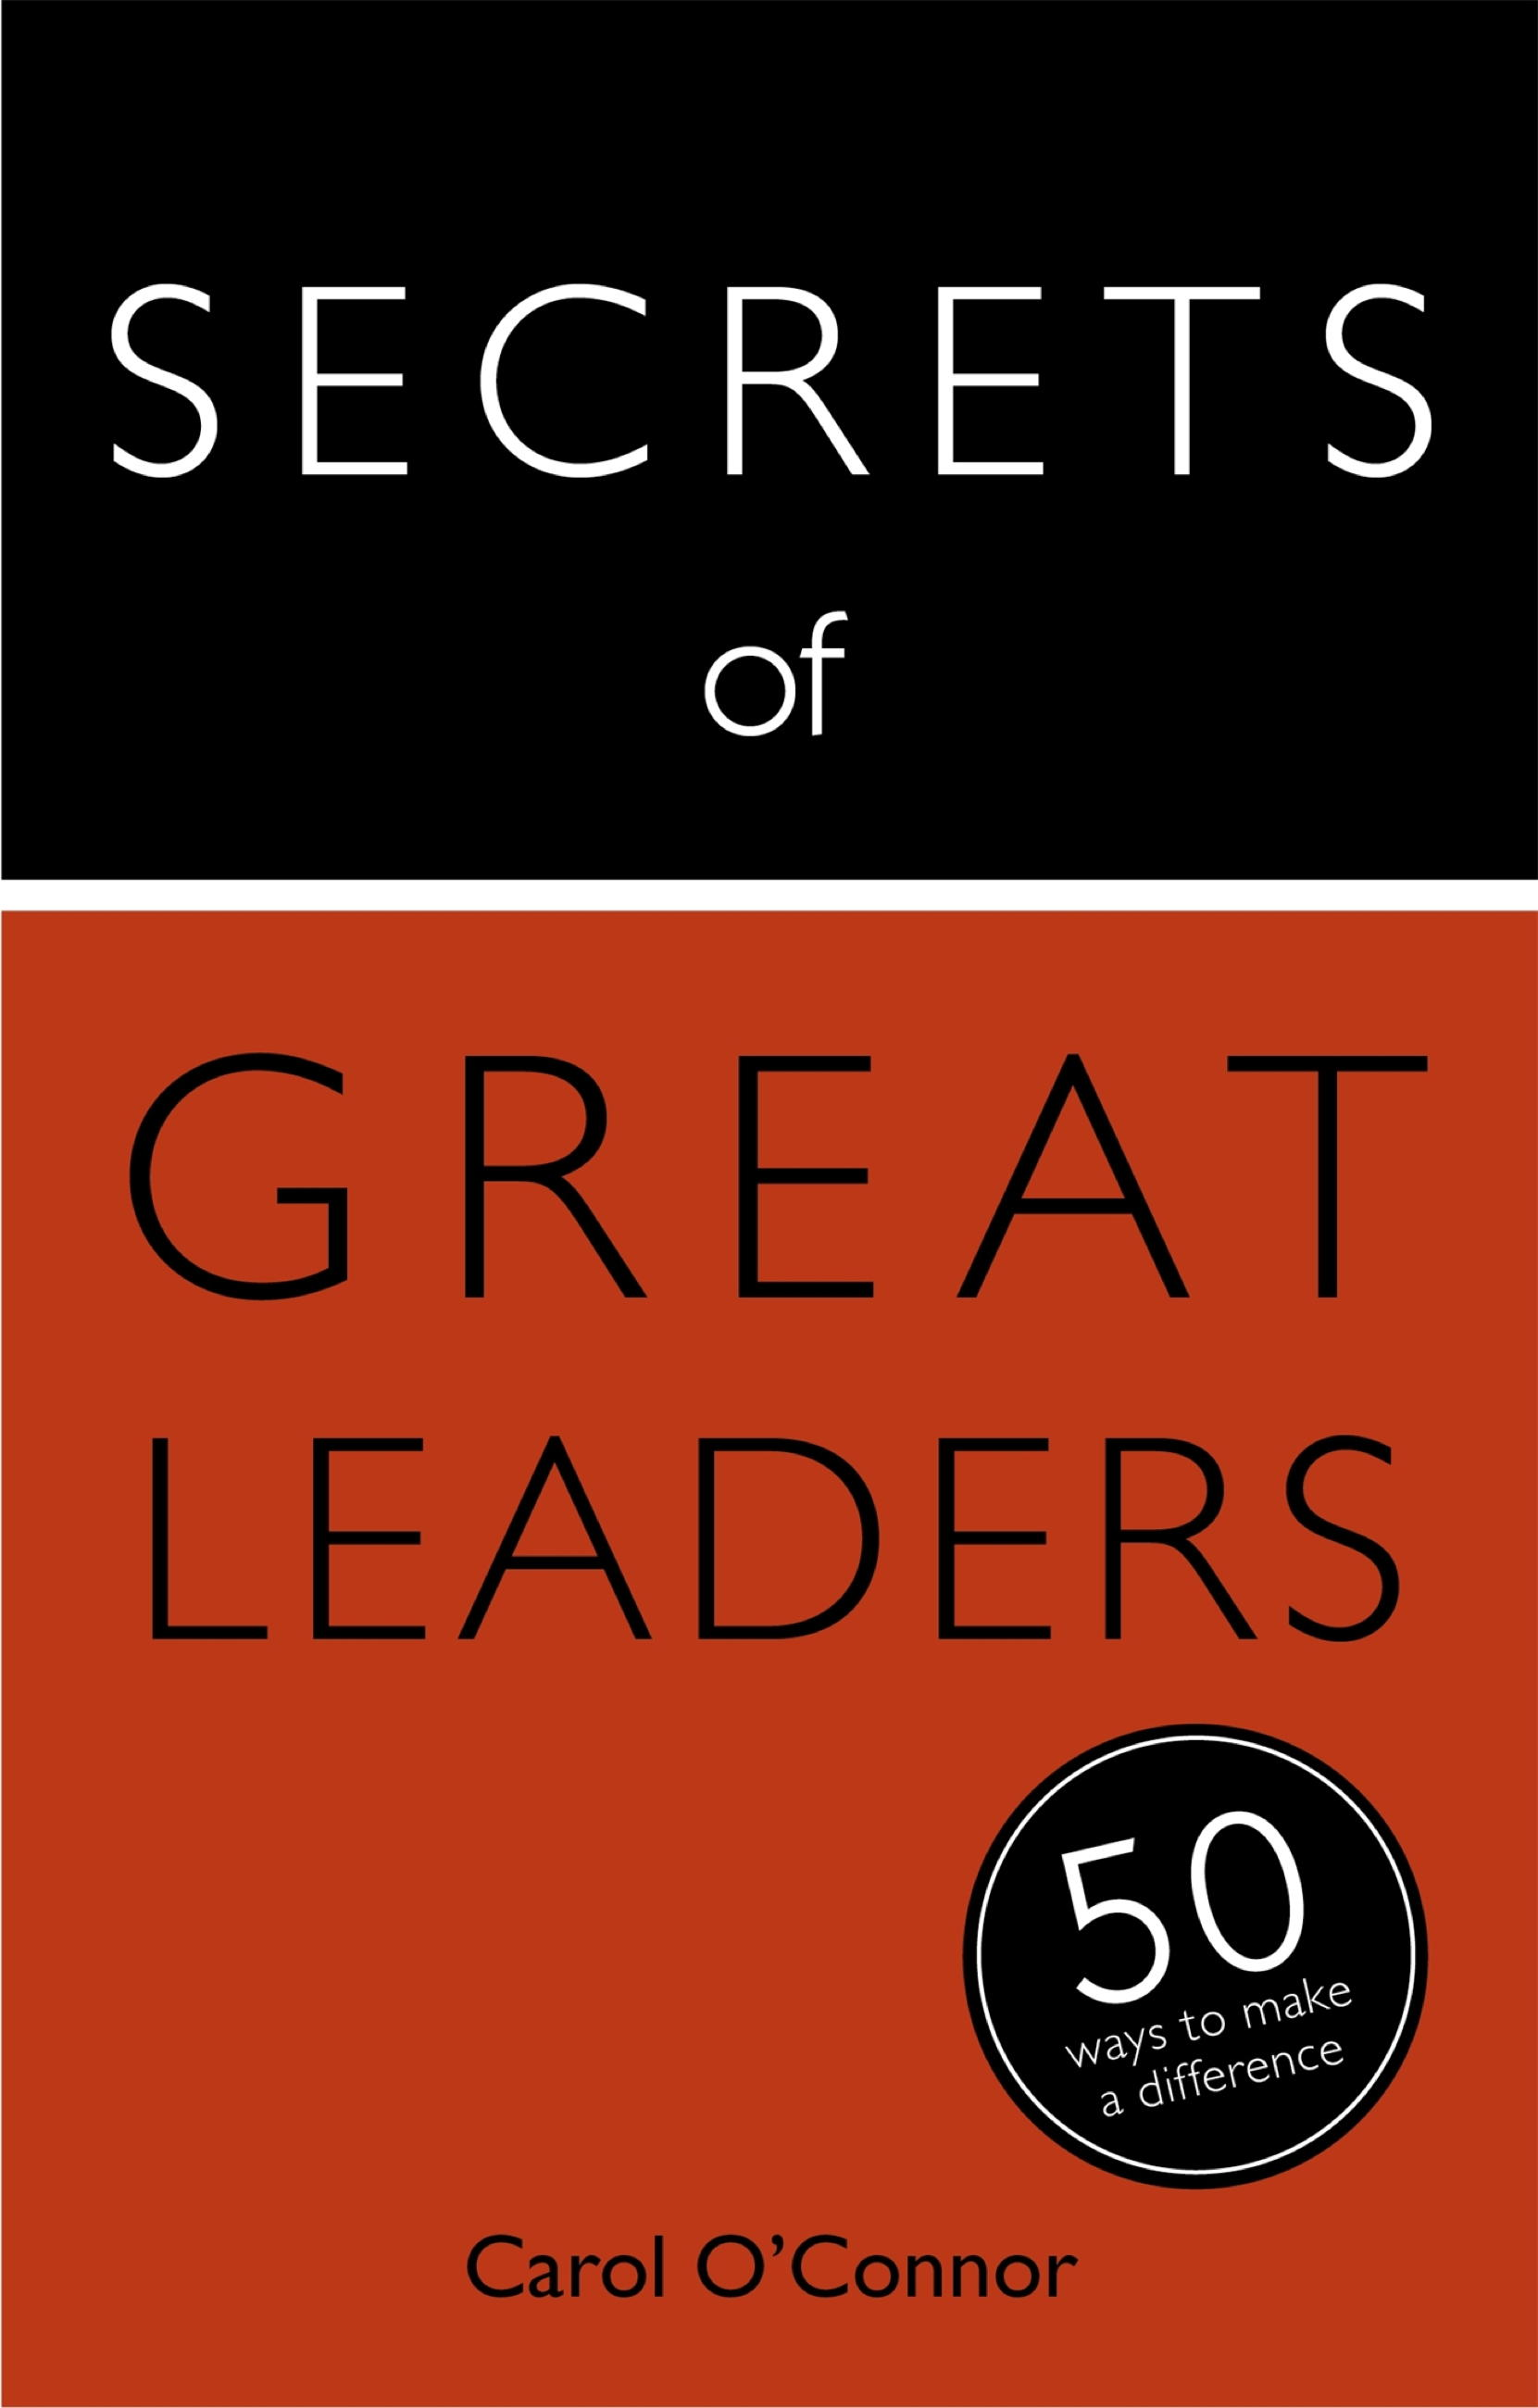 Download Ebook Secrets of Great Leaders by Carol O'Connor Pdf